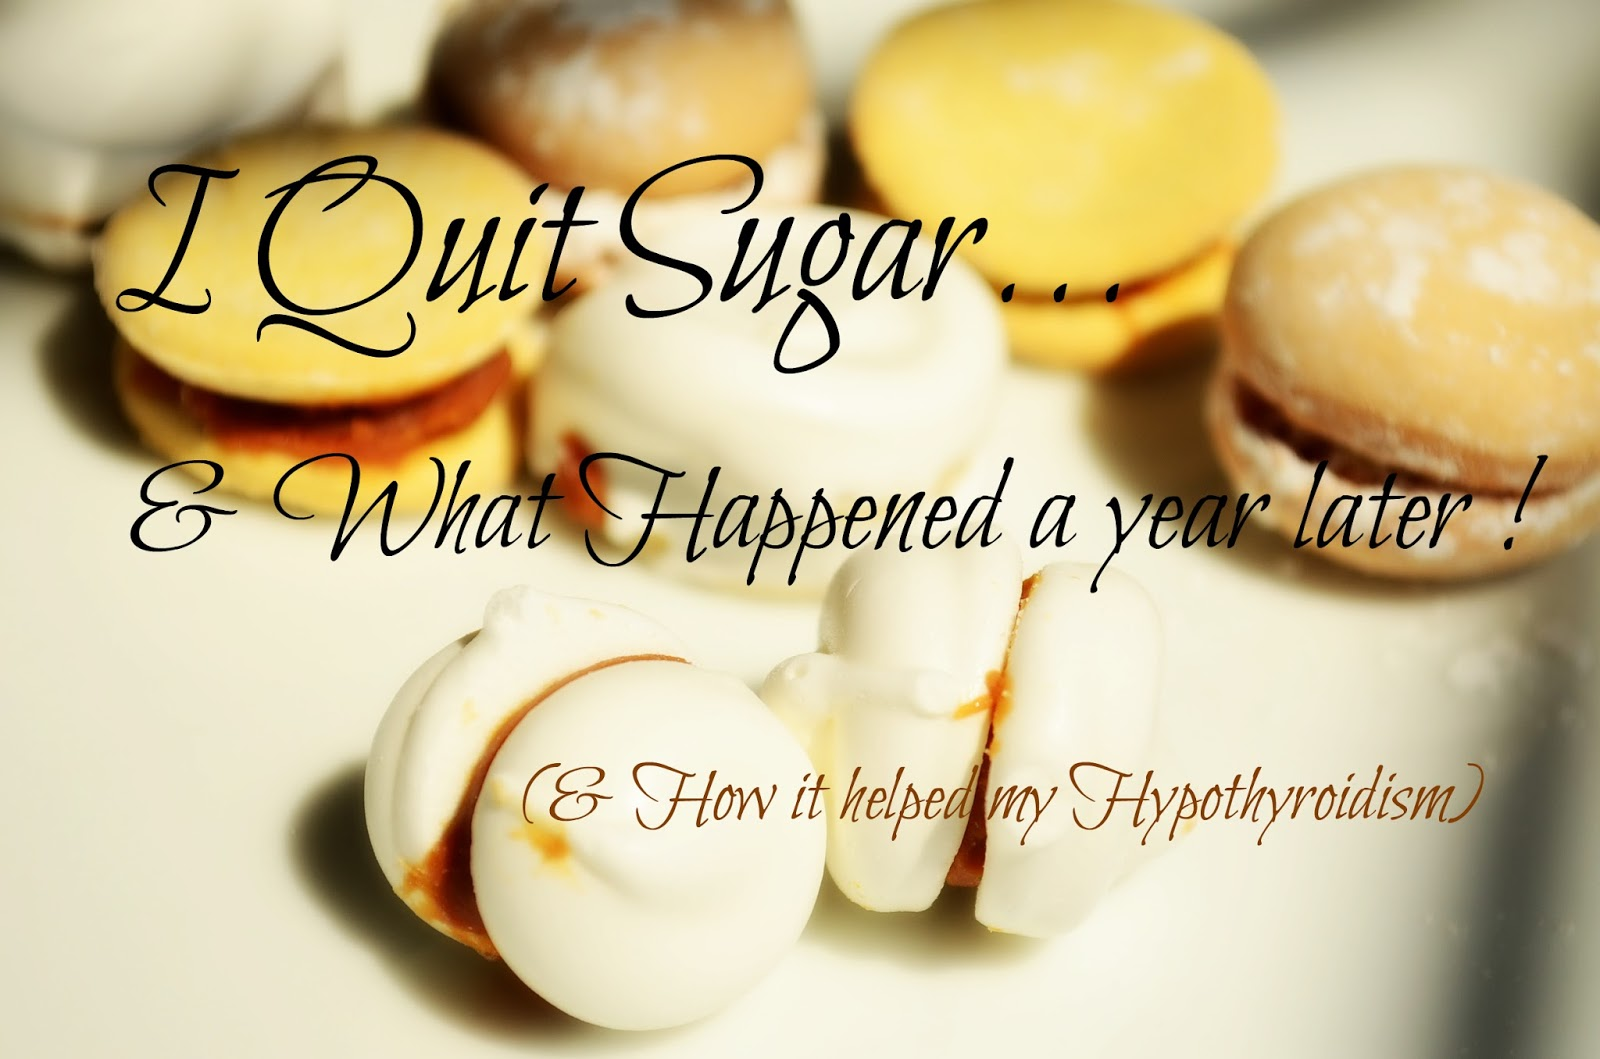 The Practical Mom: I Quit Sugar..and what happened 1 year later! (& how it helped me deal with Hypothyroidism )